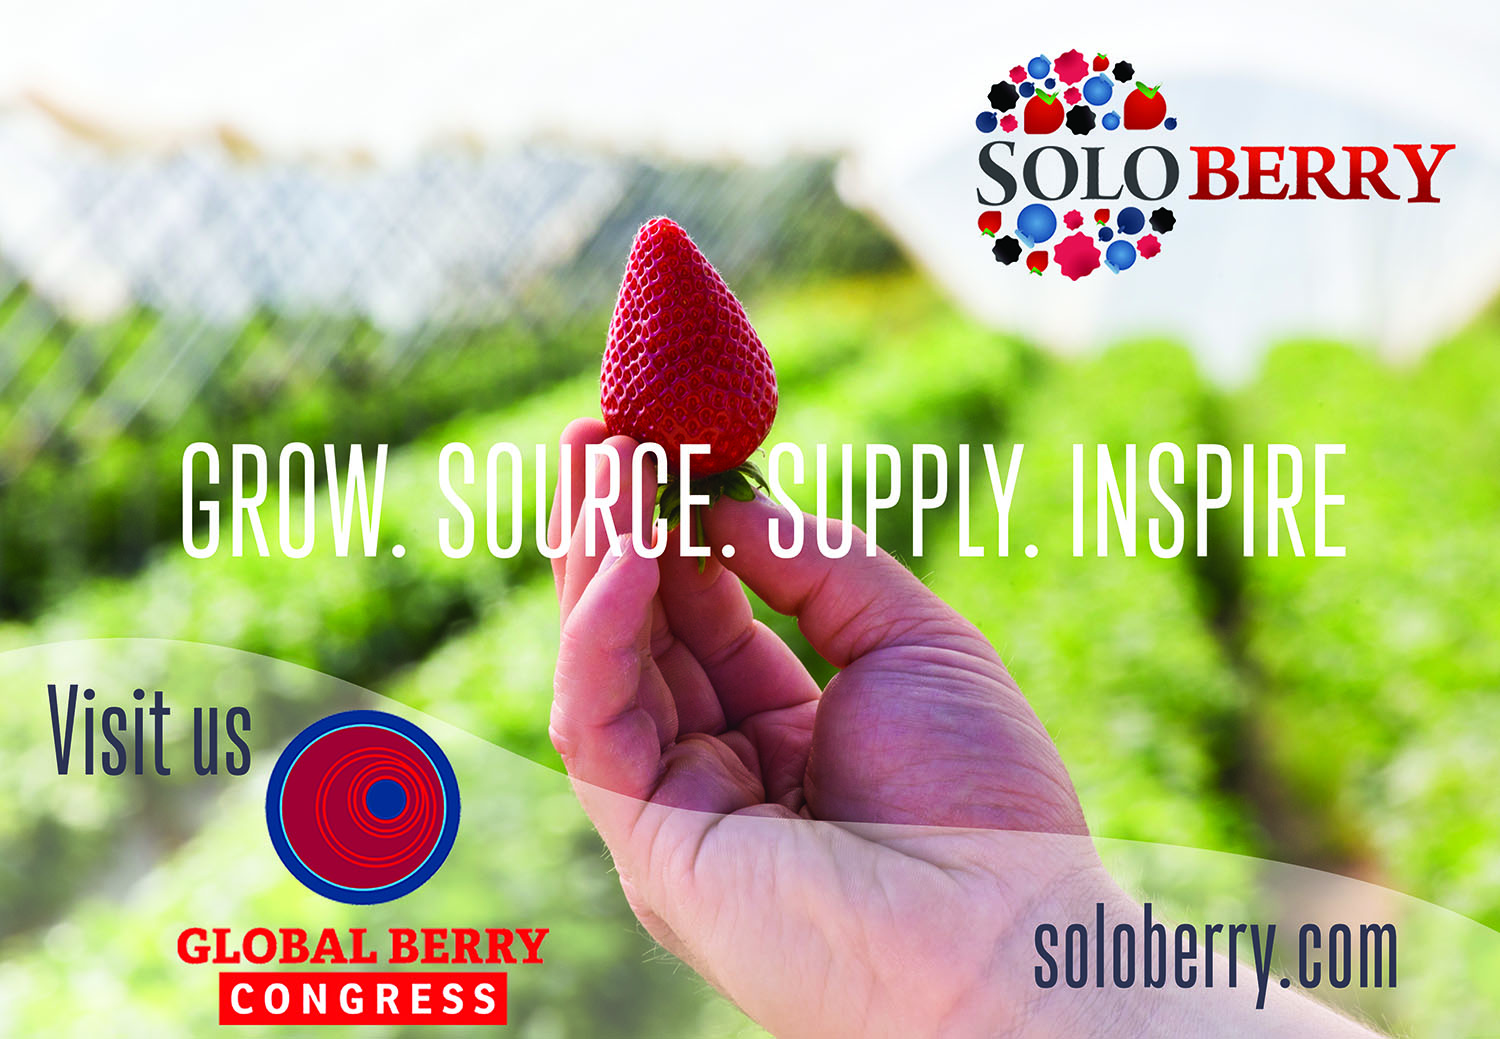 The Soloberry team will, for the first time, be exhibiting at Global Berry Congress 2018.